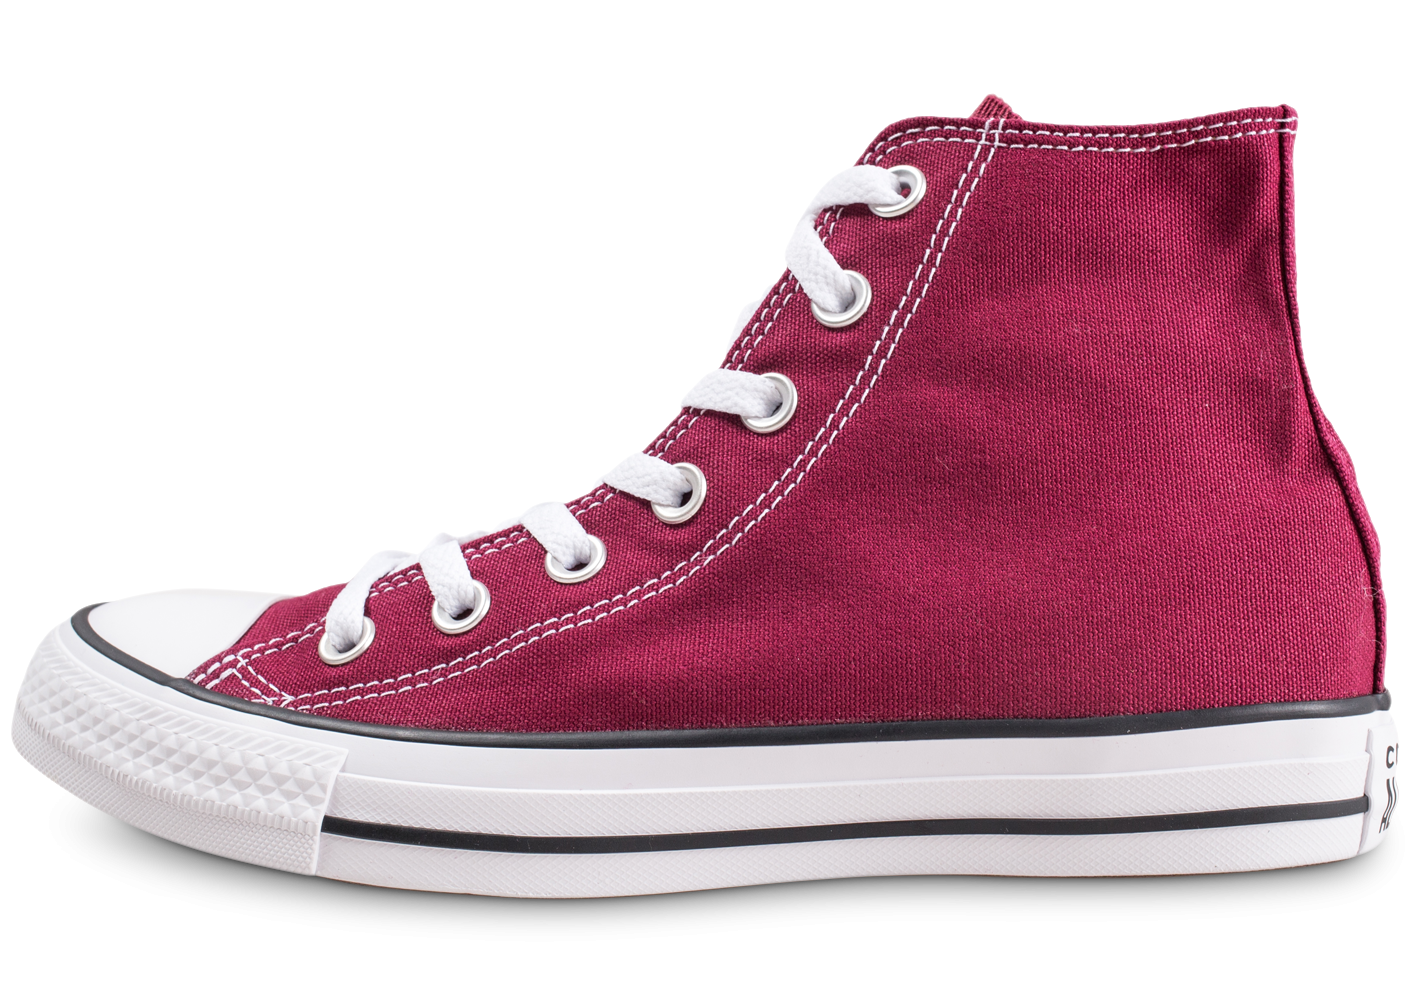 Converse Chuck Taylor All Star Hi bordeaux femme